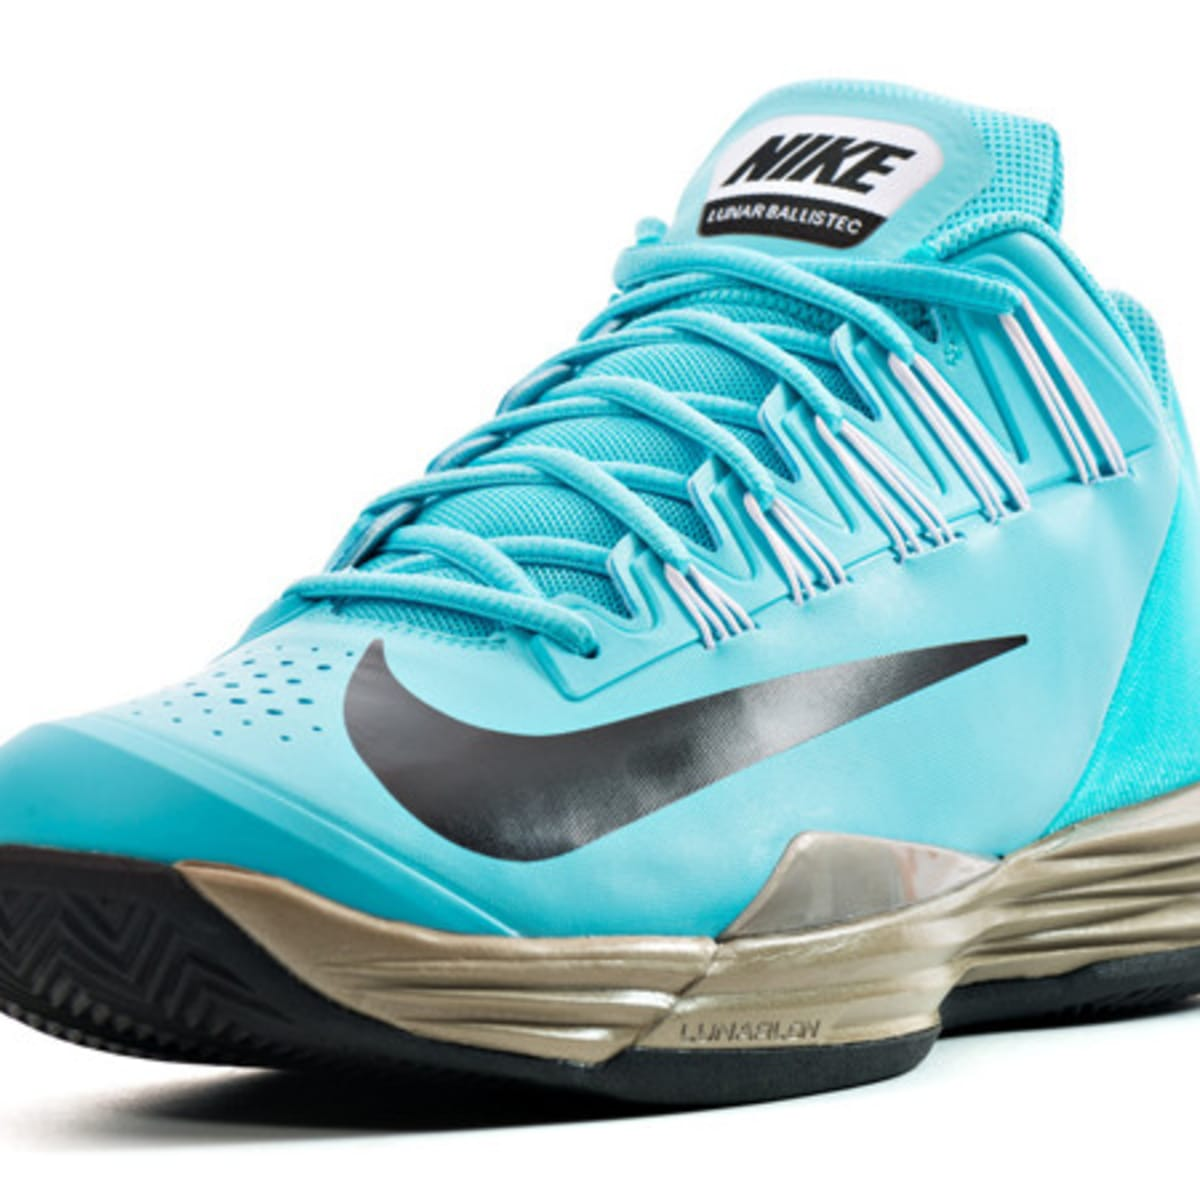 Rafael Nadal Nike 2014 French Open Collection Freshness Mag